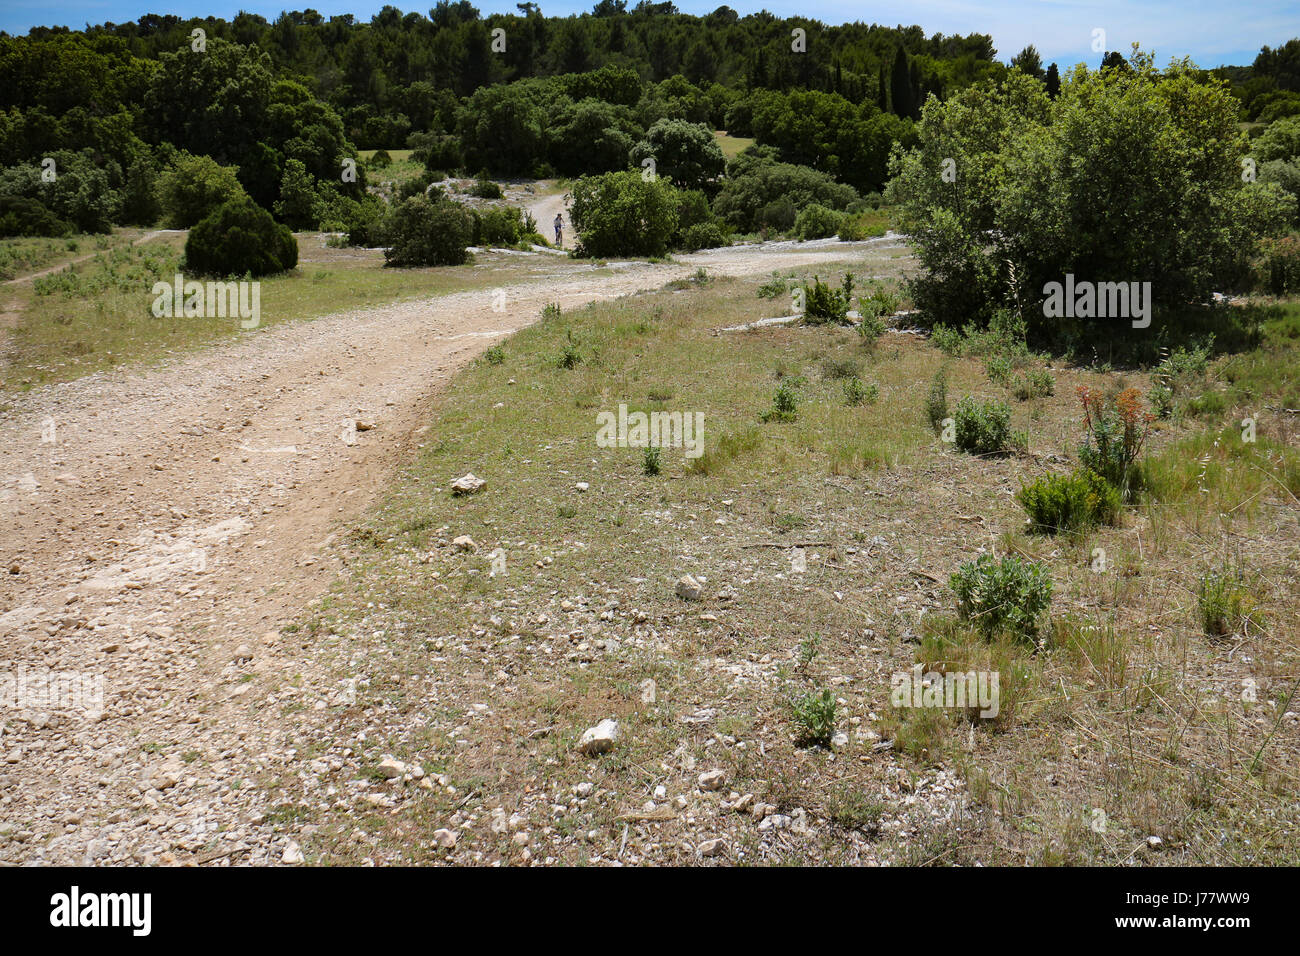 MTB cycling around Pelissanne in Provence - Stock Image